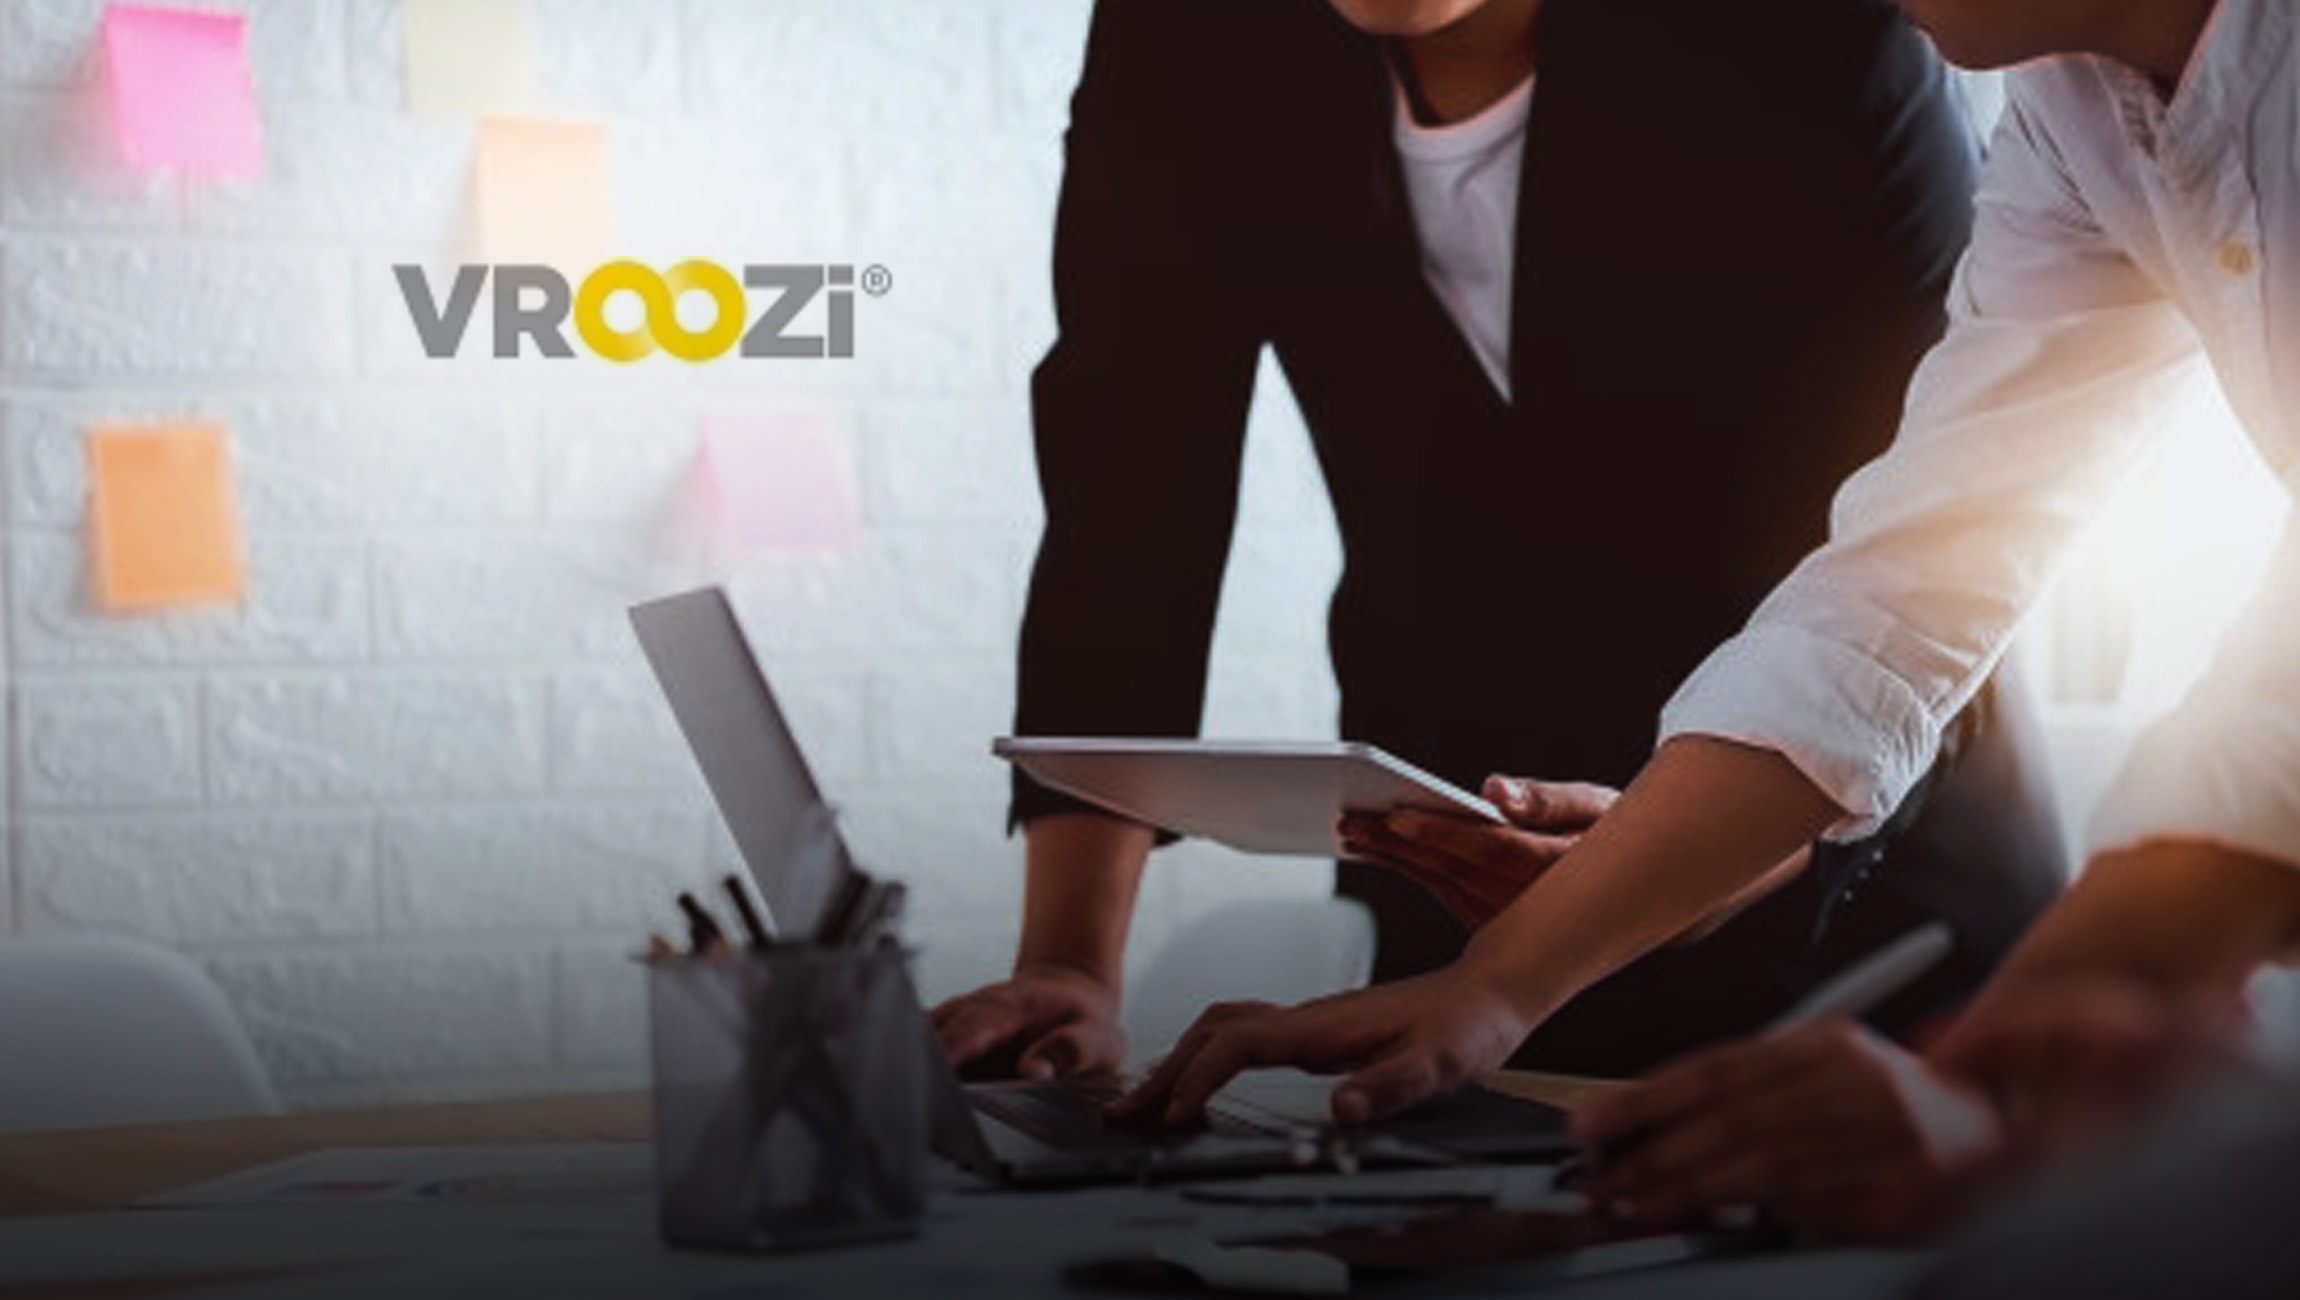 Vroozi Recognized for Leading Technology, Top Customer Satisfaction and Strong Results